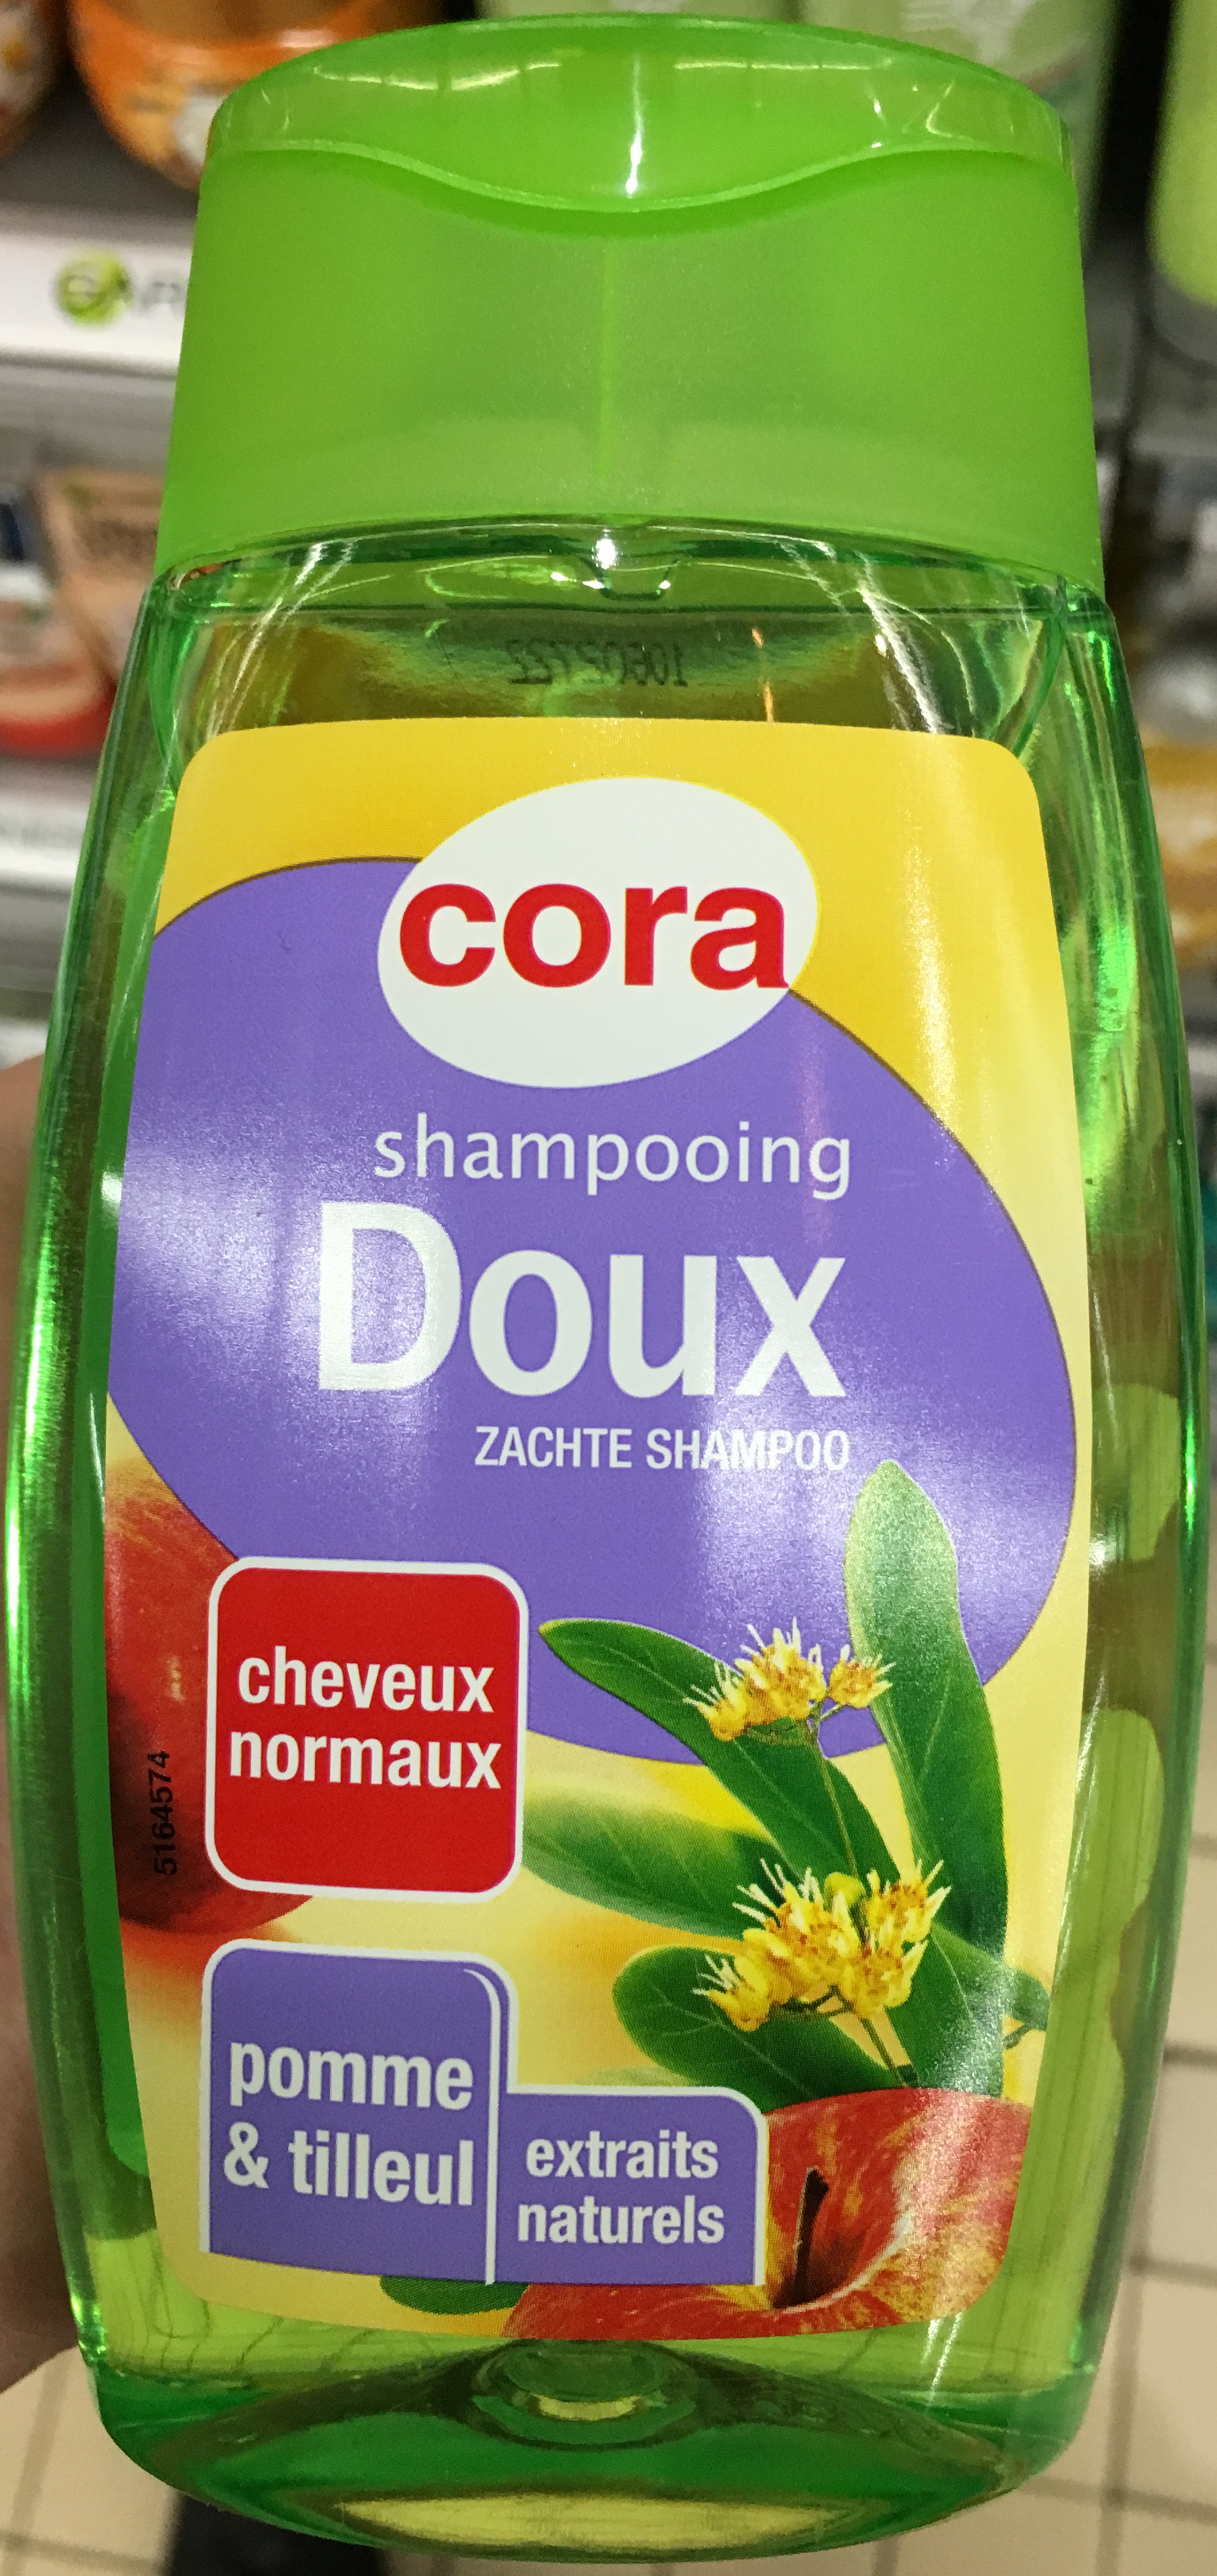 Shampooing Doux cheveux normaux Pomme & tilleul - Product